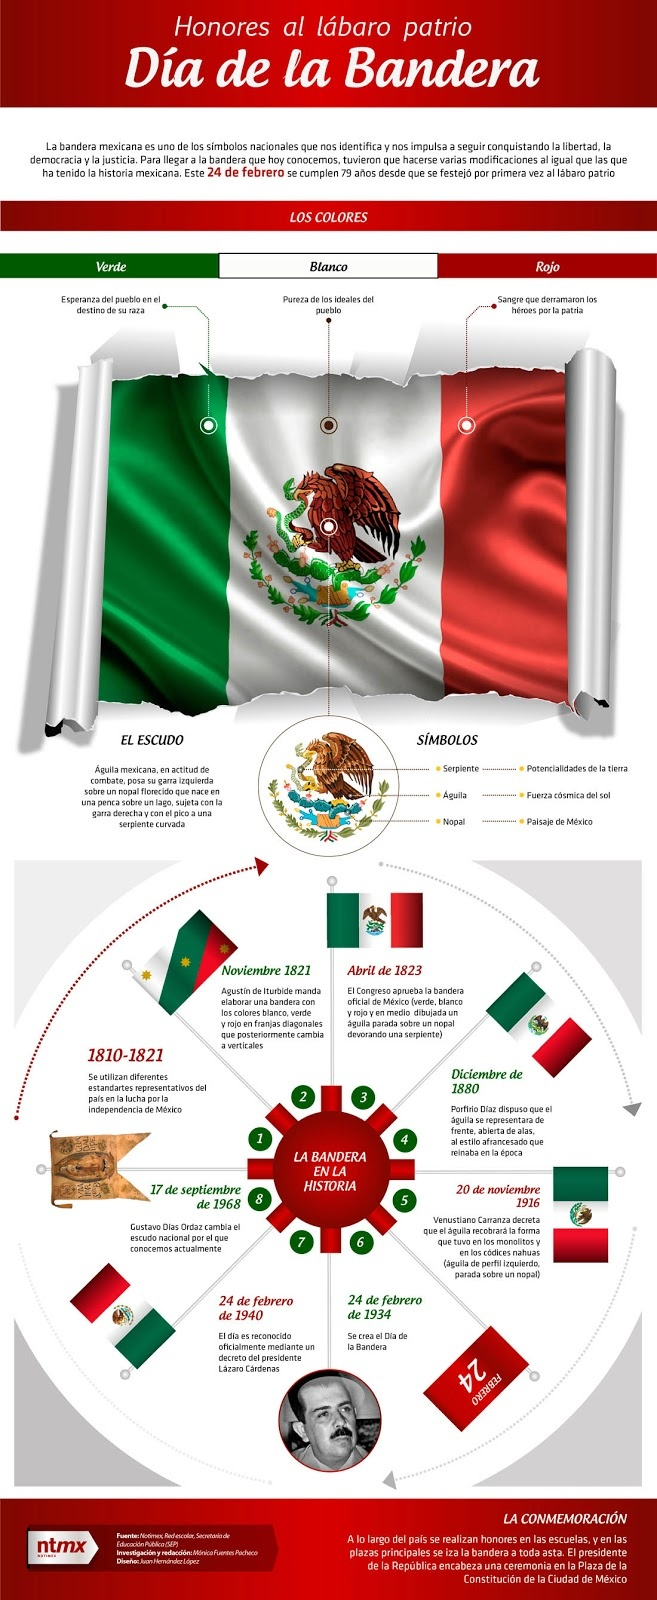 338 best banderas images on pinterest flags viva mexico and